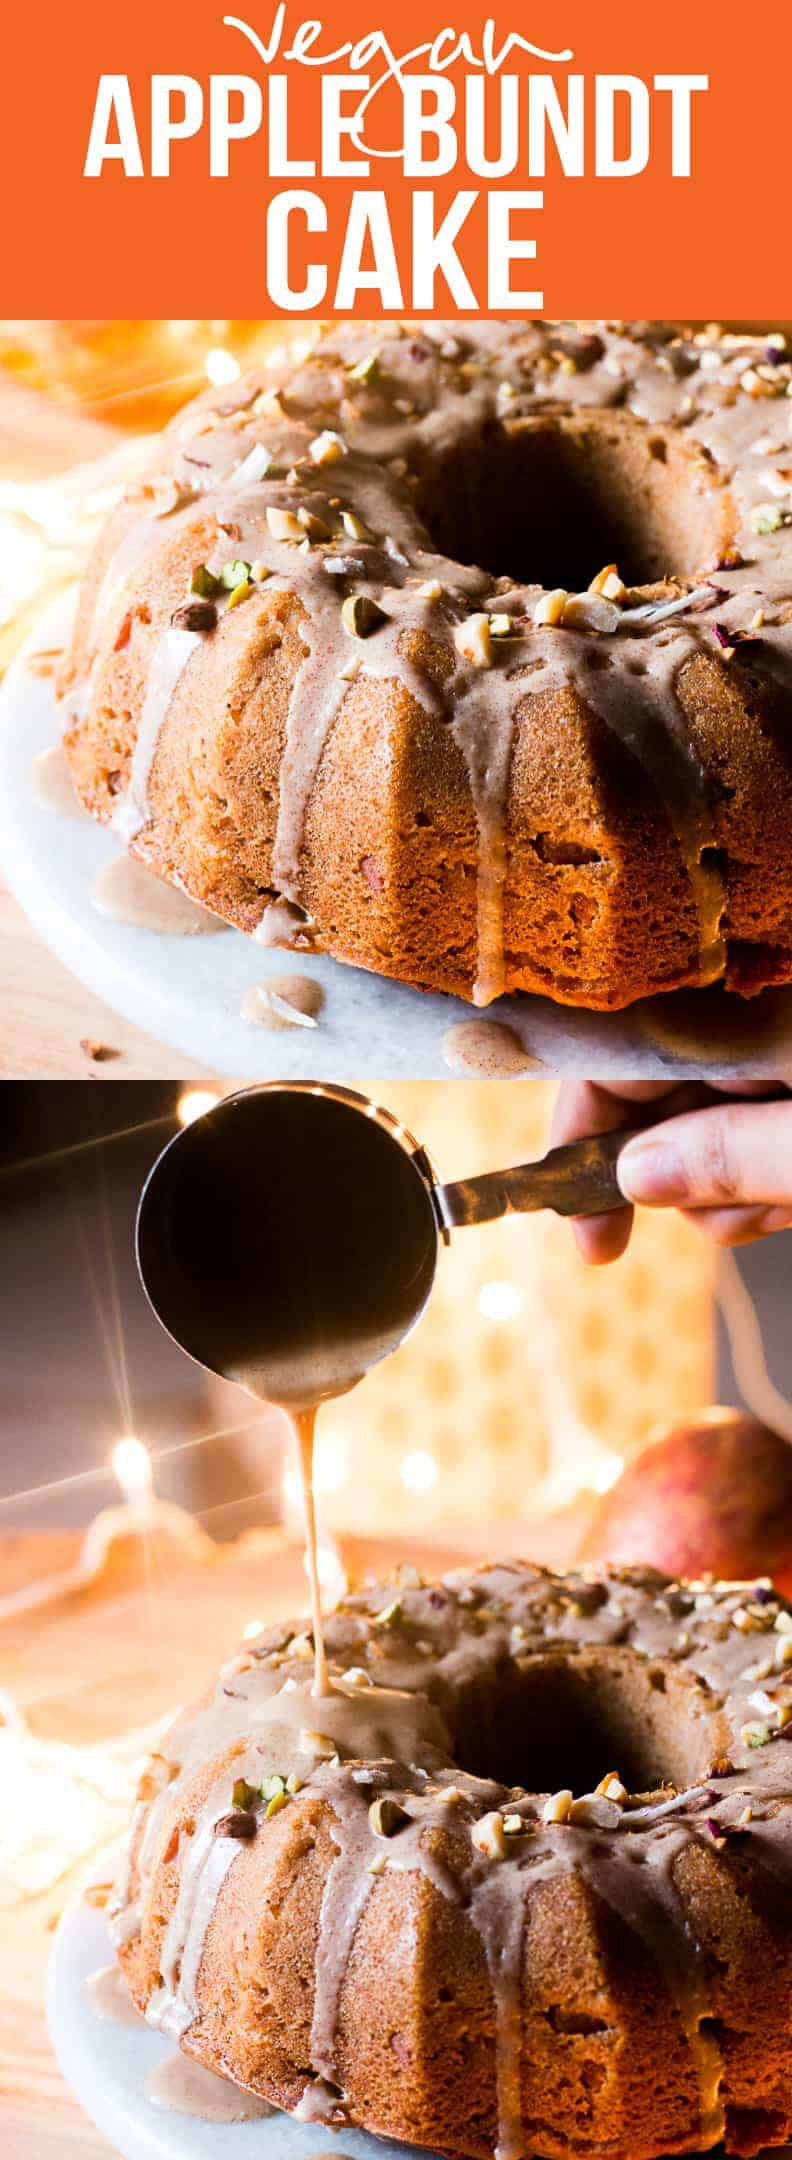 Can You Let The Cake Set In Bundt Pan